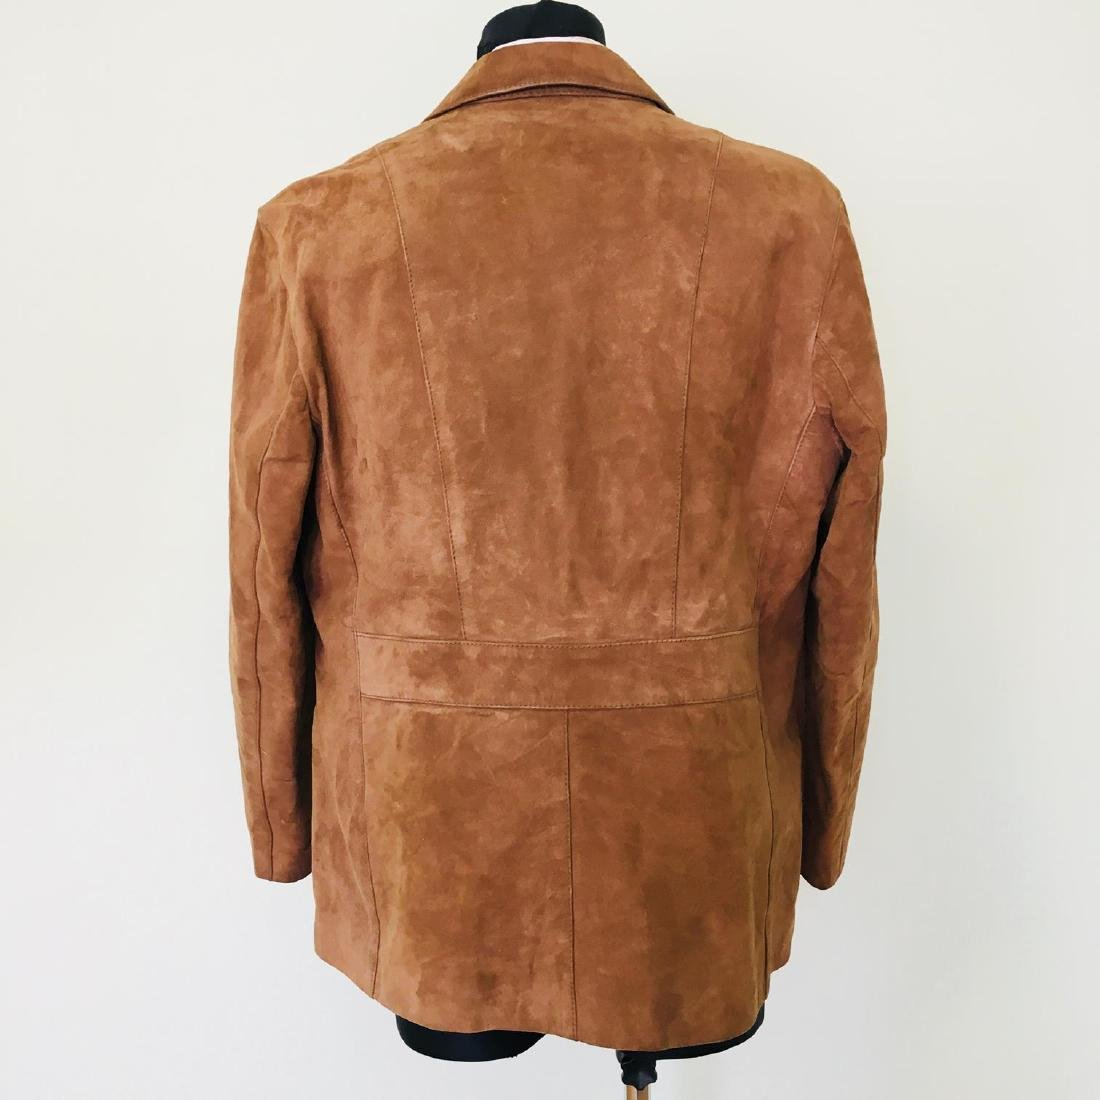 Vintage Men's Canda Designer Genuine Leather Jacket - 5